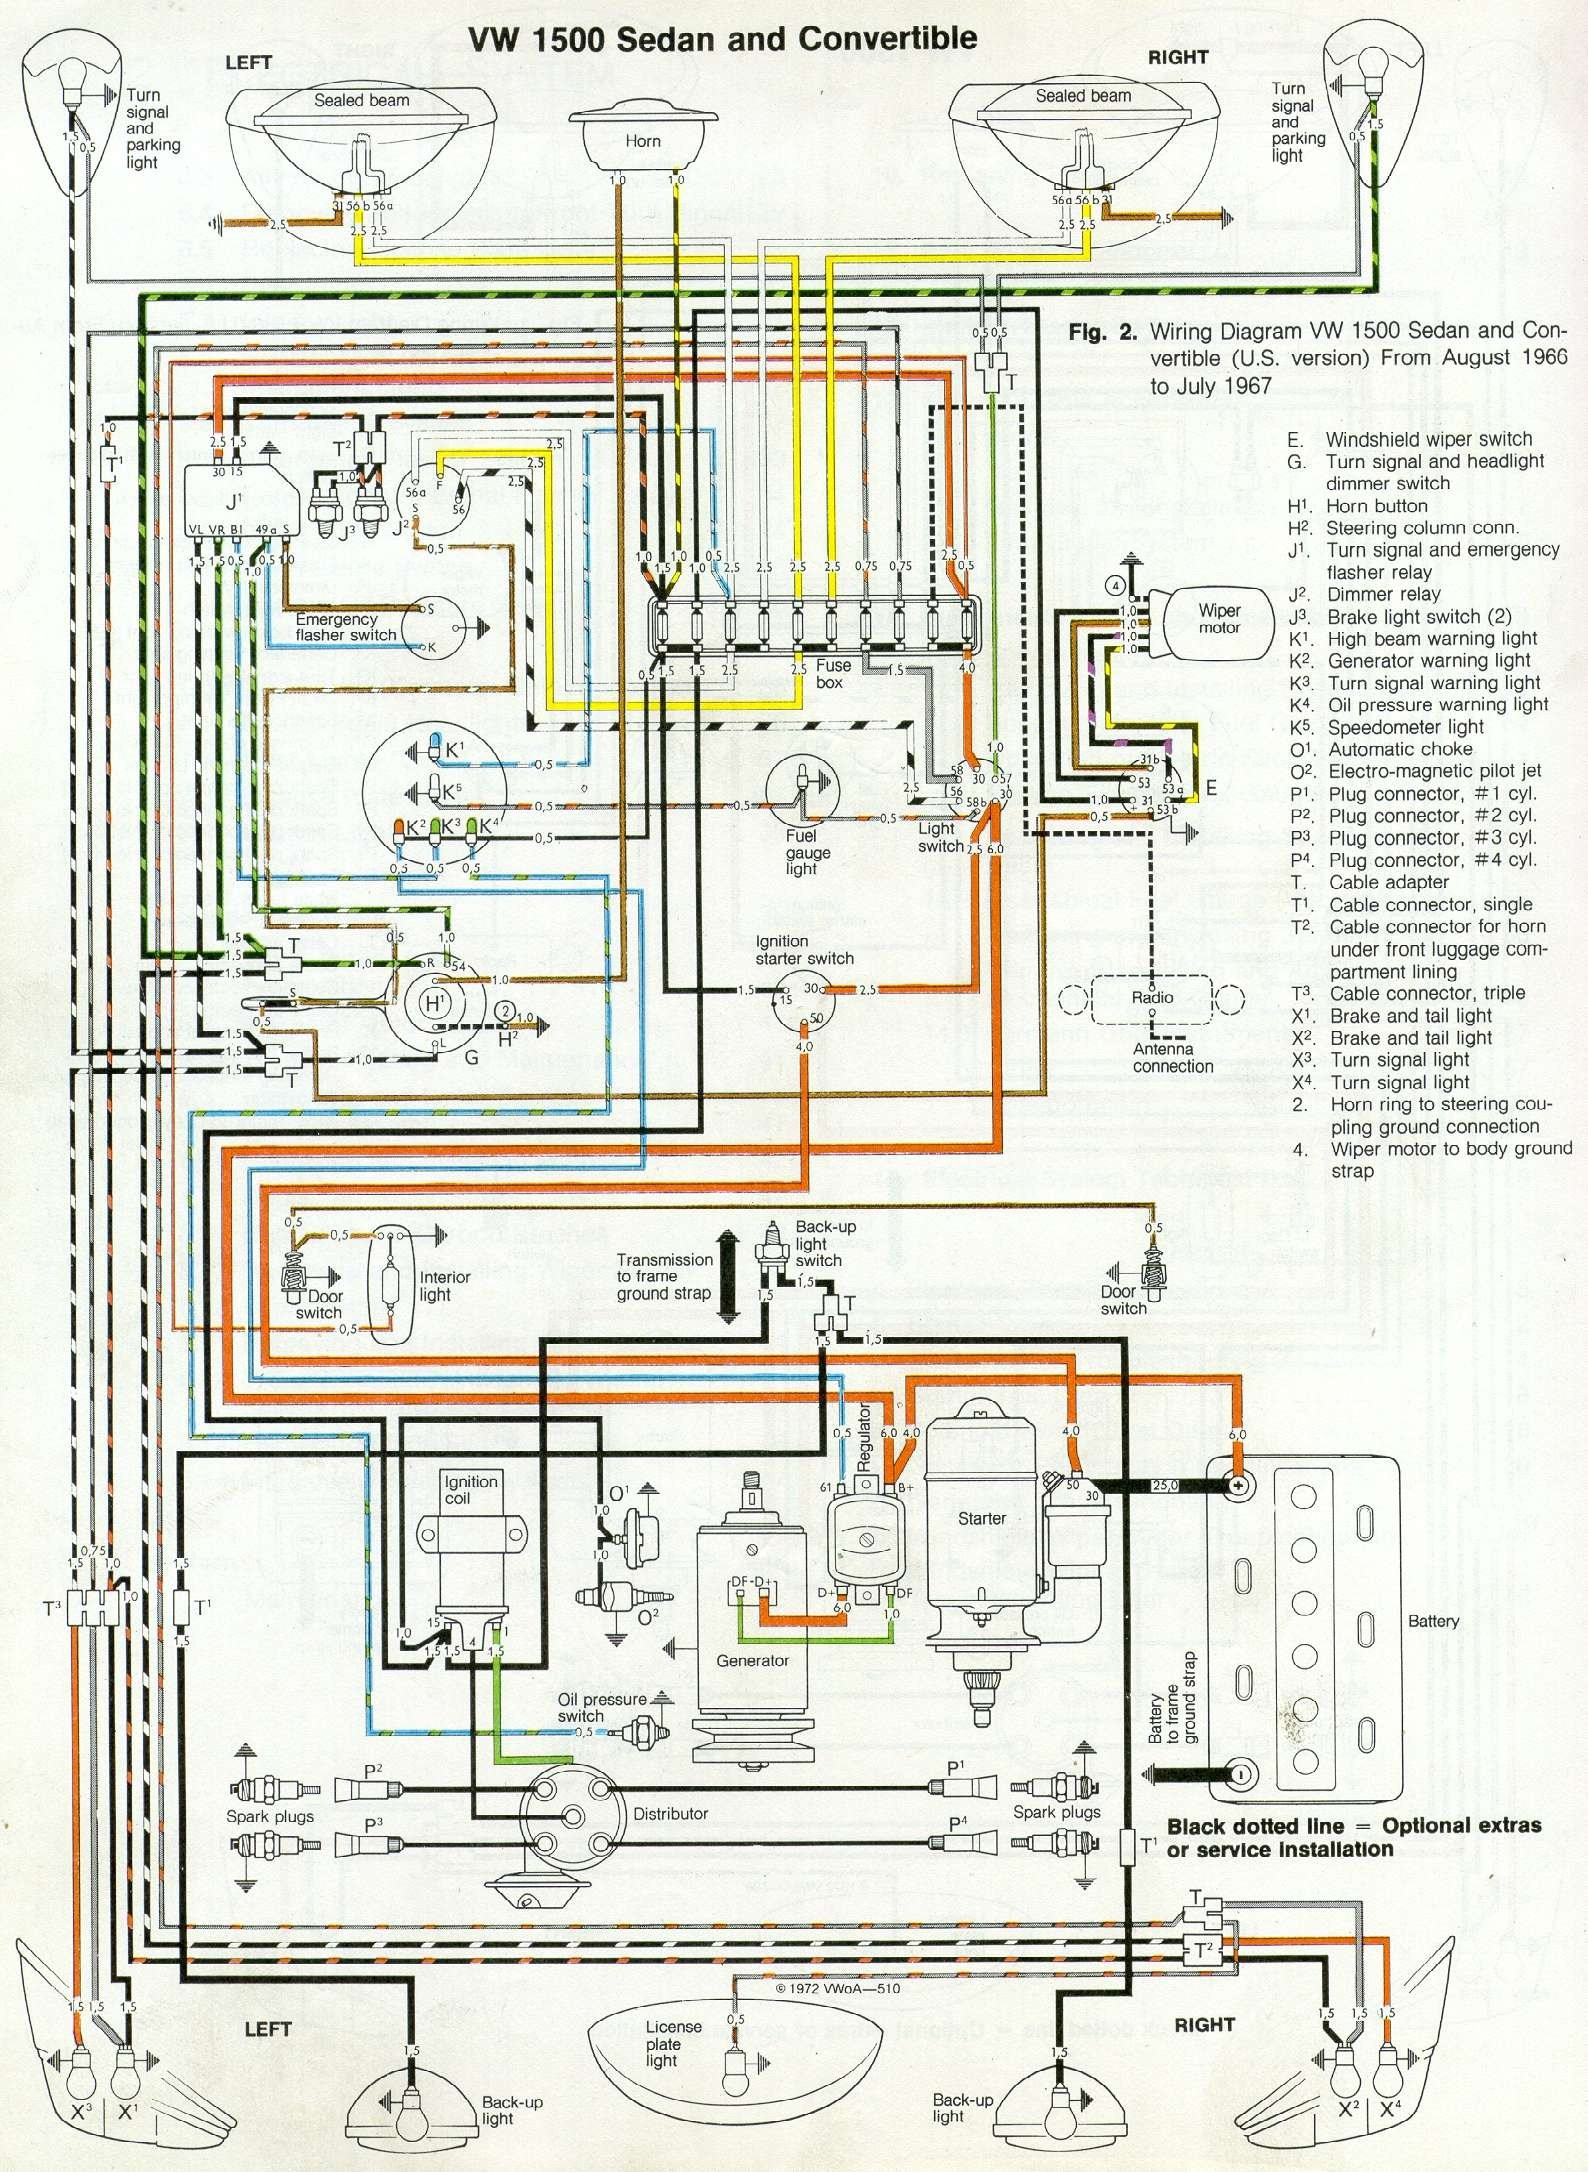 VW Beetle Wiring Digram 67 beetle wiring diagram u s version 1967 vw beetle vw bug wiring diagram at cos-gaming.co